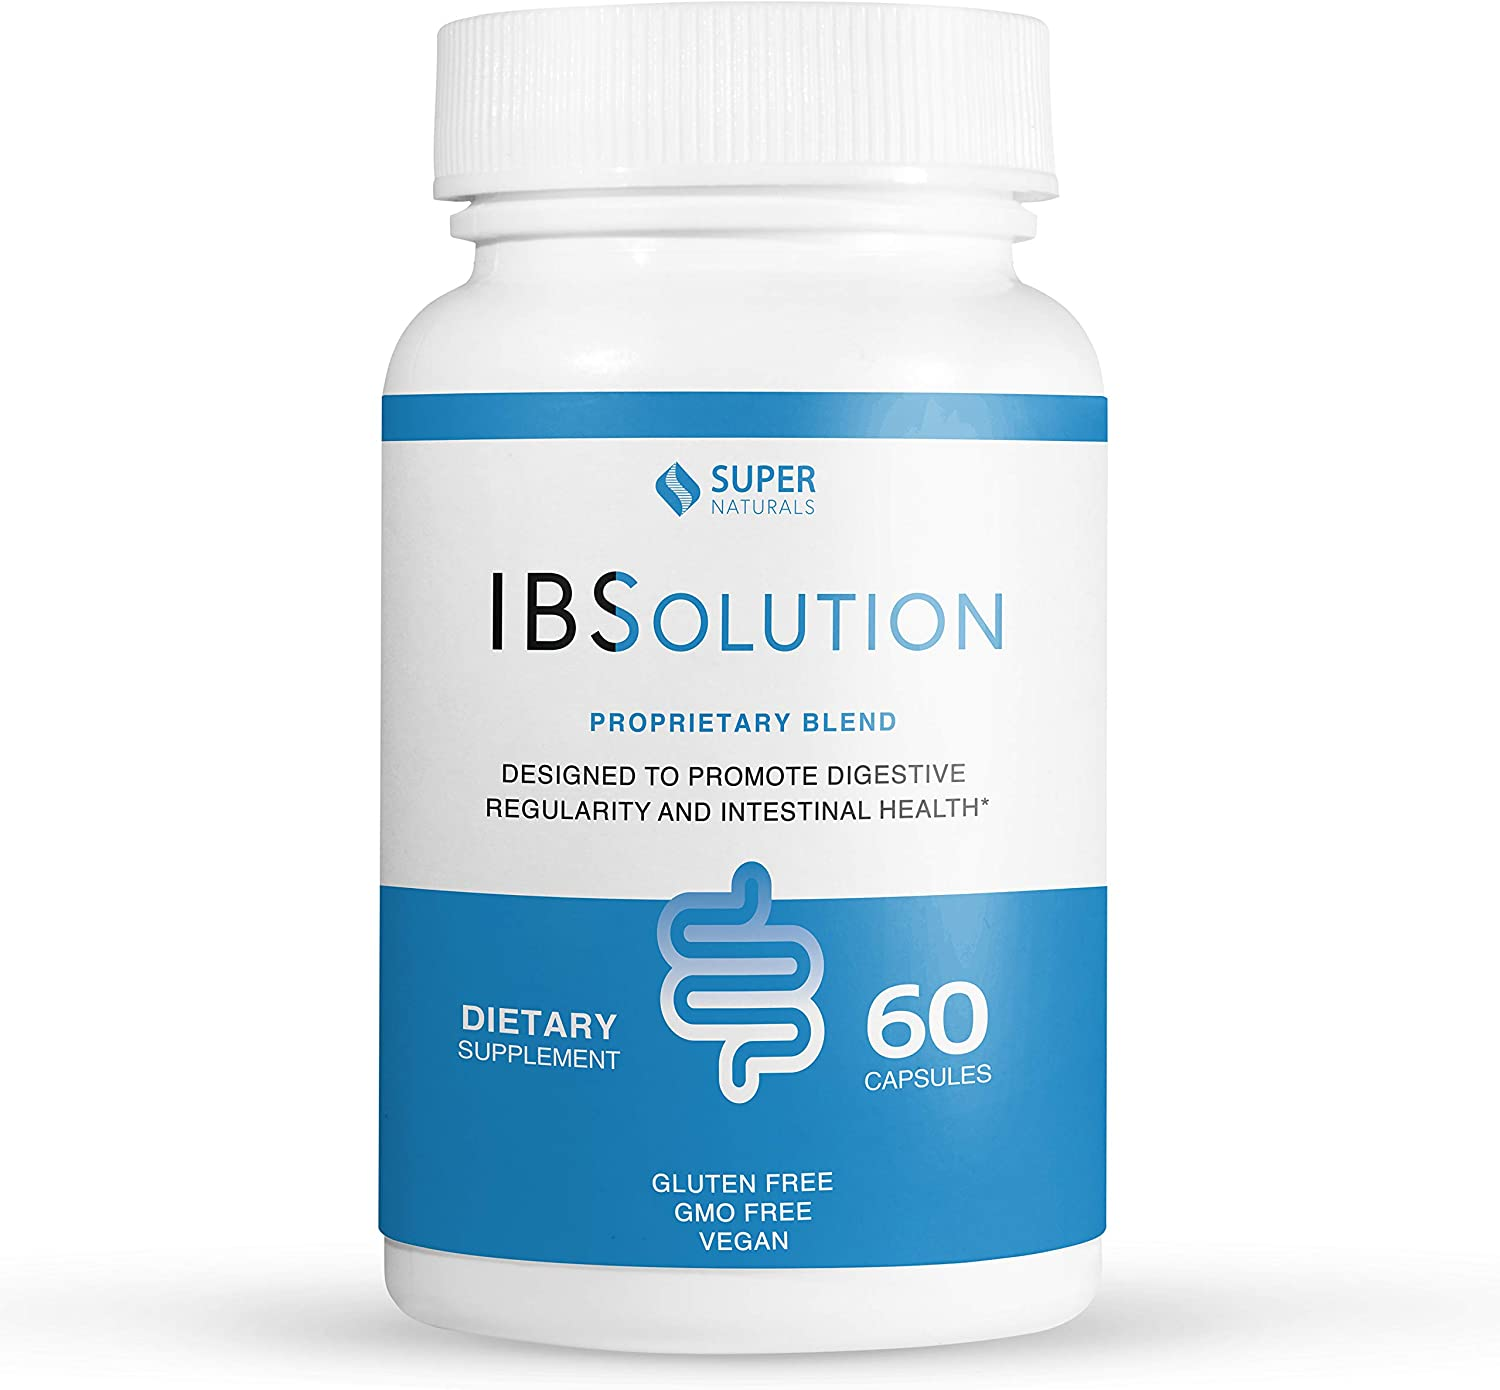 Amazon.com: All Natural IBS Relief by IBSolution - Made in USA, Non-GMO,  Gluten Free & Vegan (60 Capsules) - for Symptoms of IBS (Bloating,  Constipation, Gas, Diarrhea, Abdominal Pain): Health & Personal